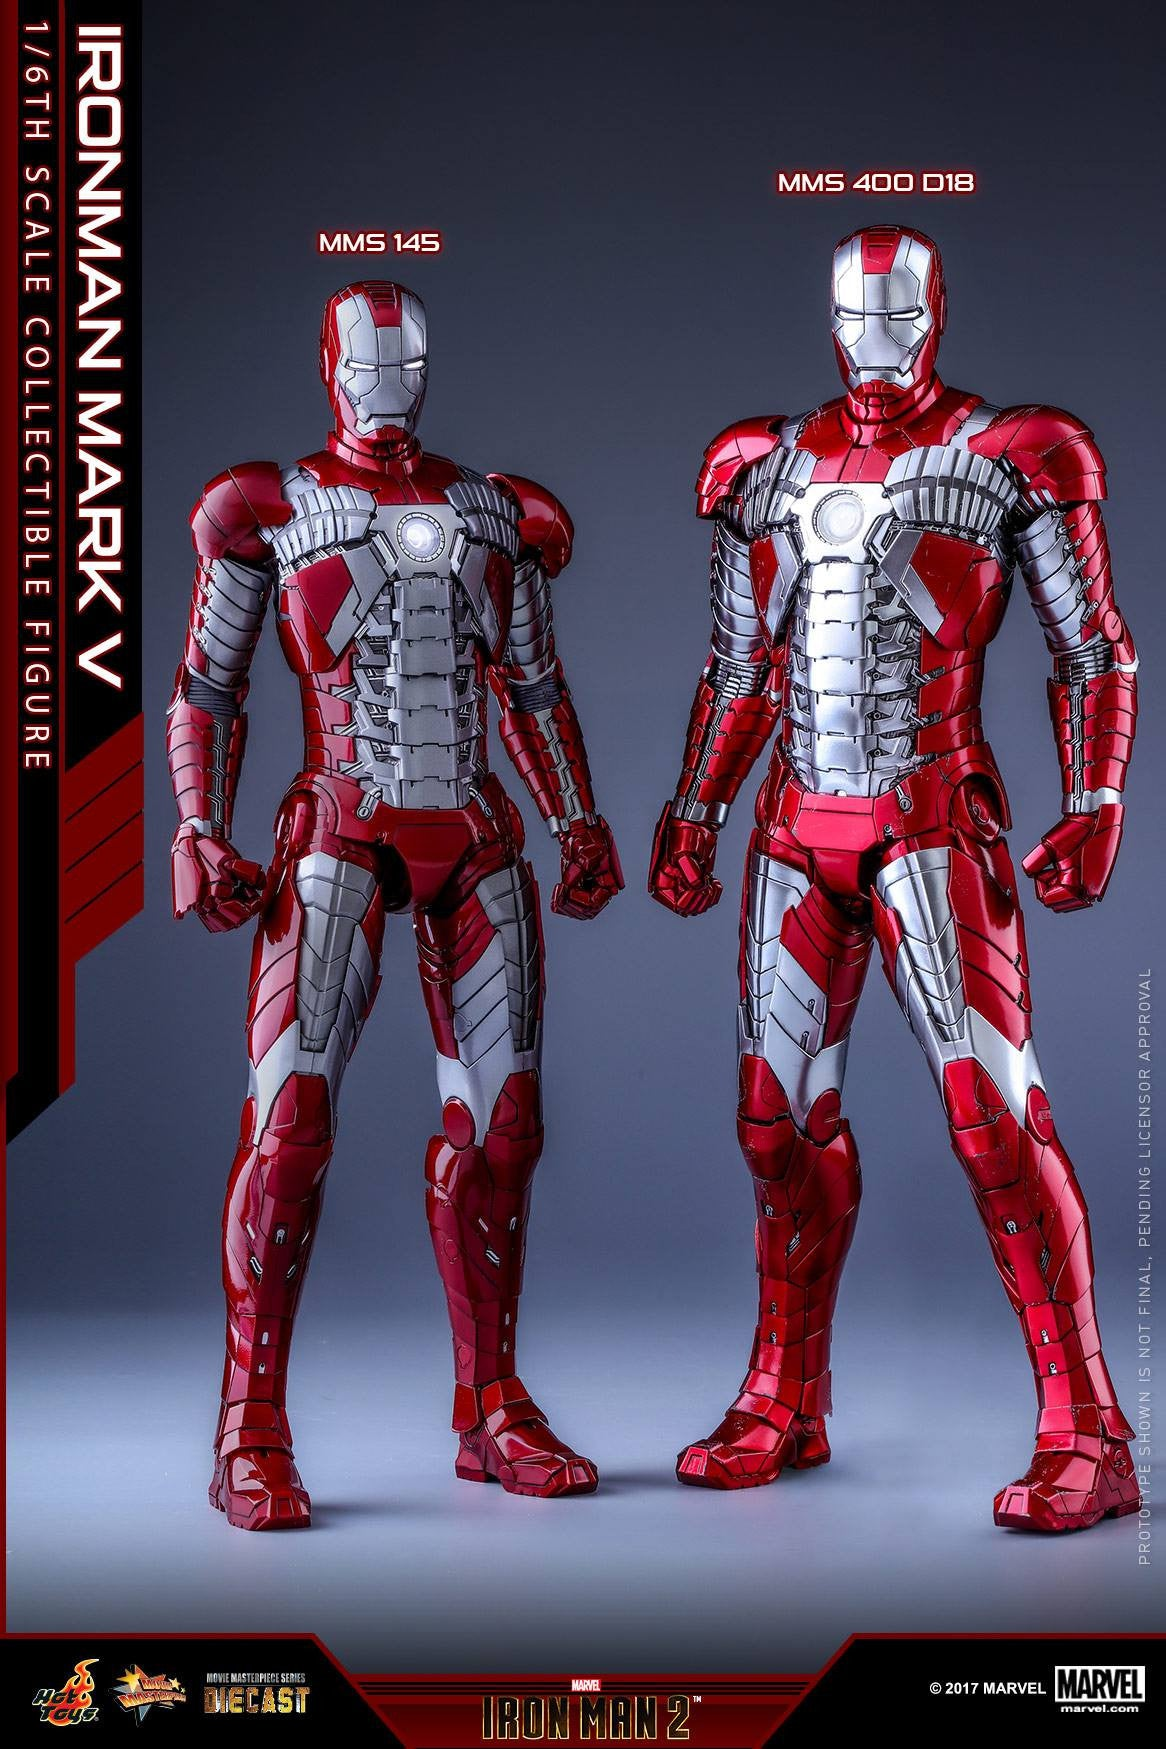 Hot Toys - MMS400D18 - Iron Man 2 - Mark V (DIECAST) - Marvelous Toys - 23